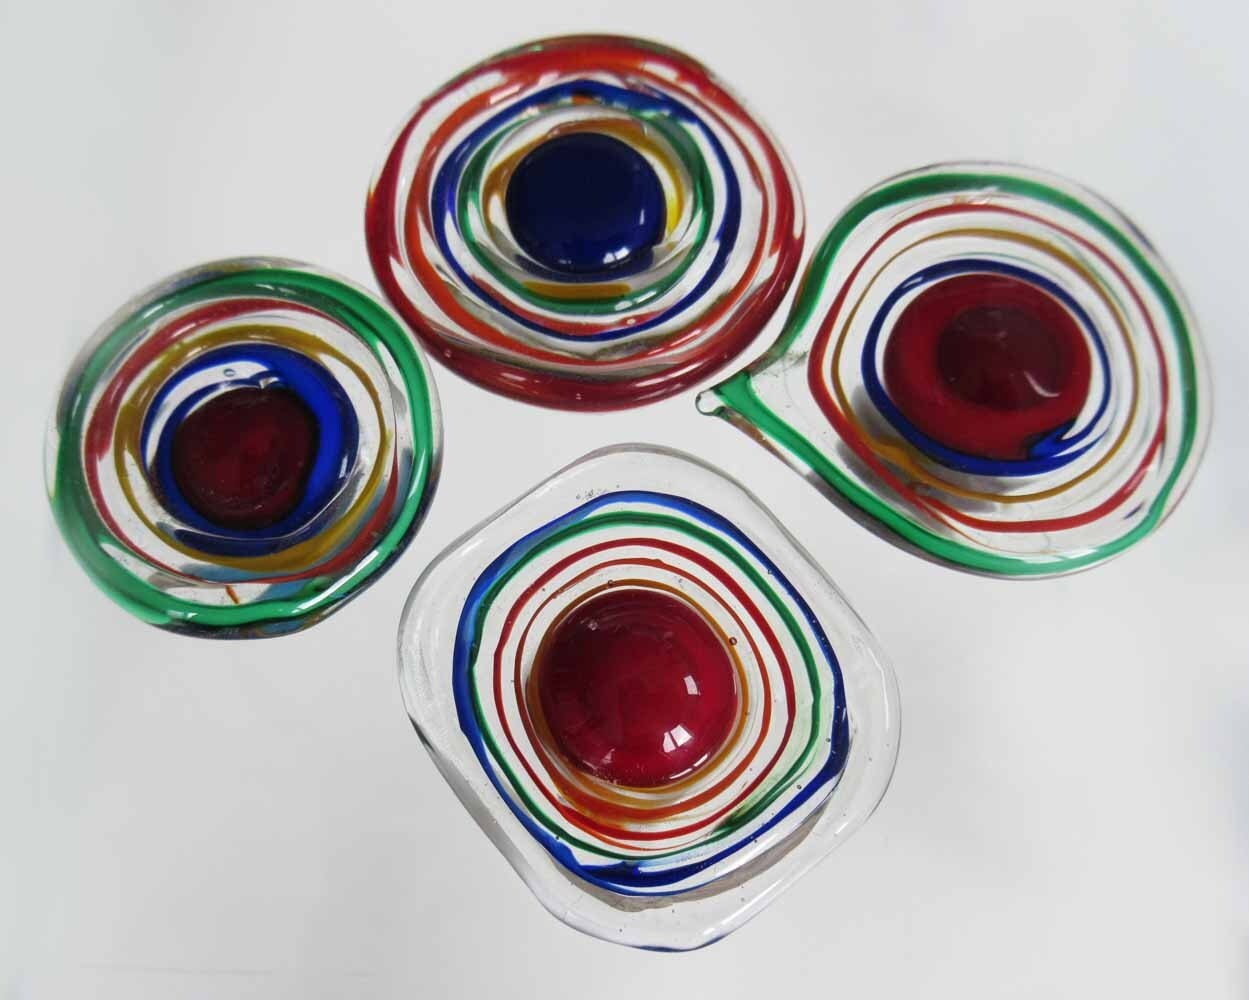 Green Glass Cabinet Knobs And Drawer Pulls: KNOBS 4 Venetian Glass Cabinet Knobs Red Green Blue For